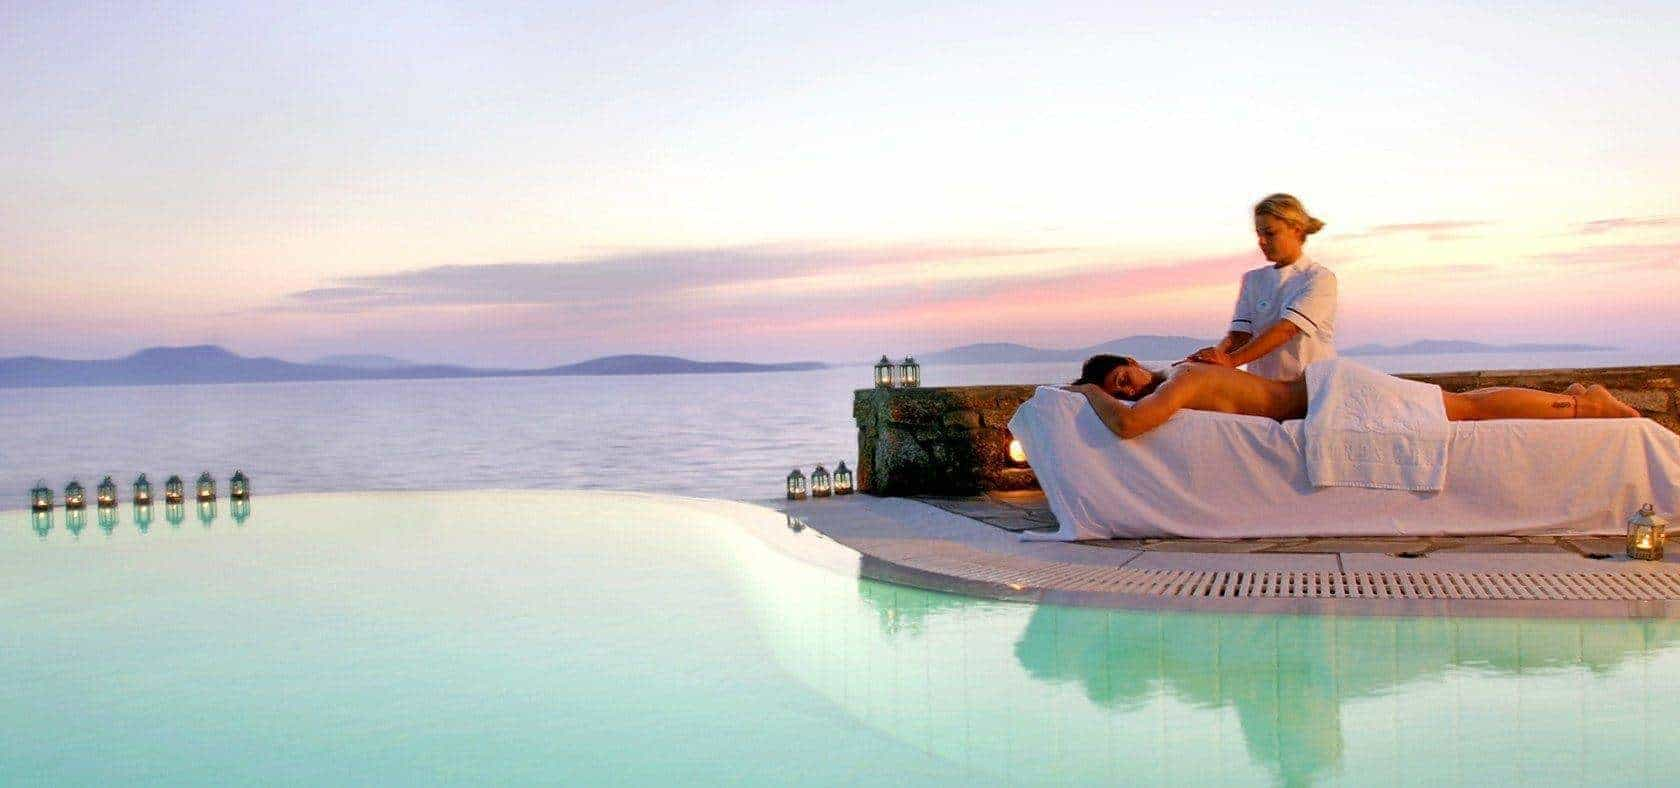 The perfect place to be a Greek Goddess on your honeymoon